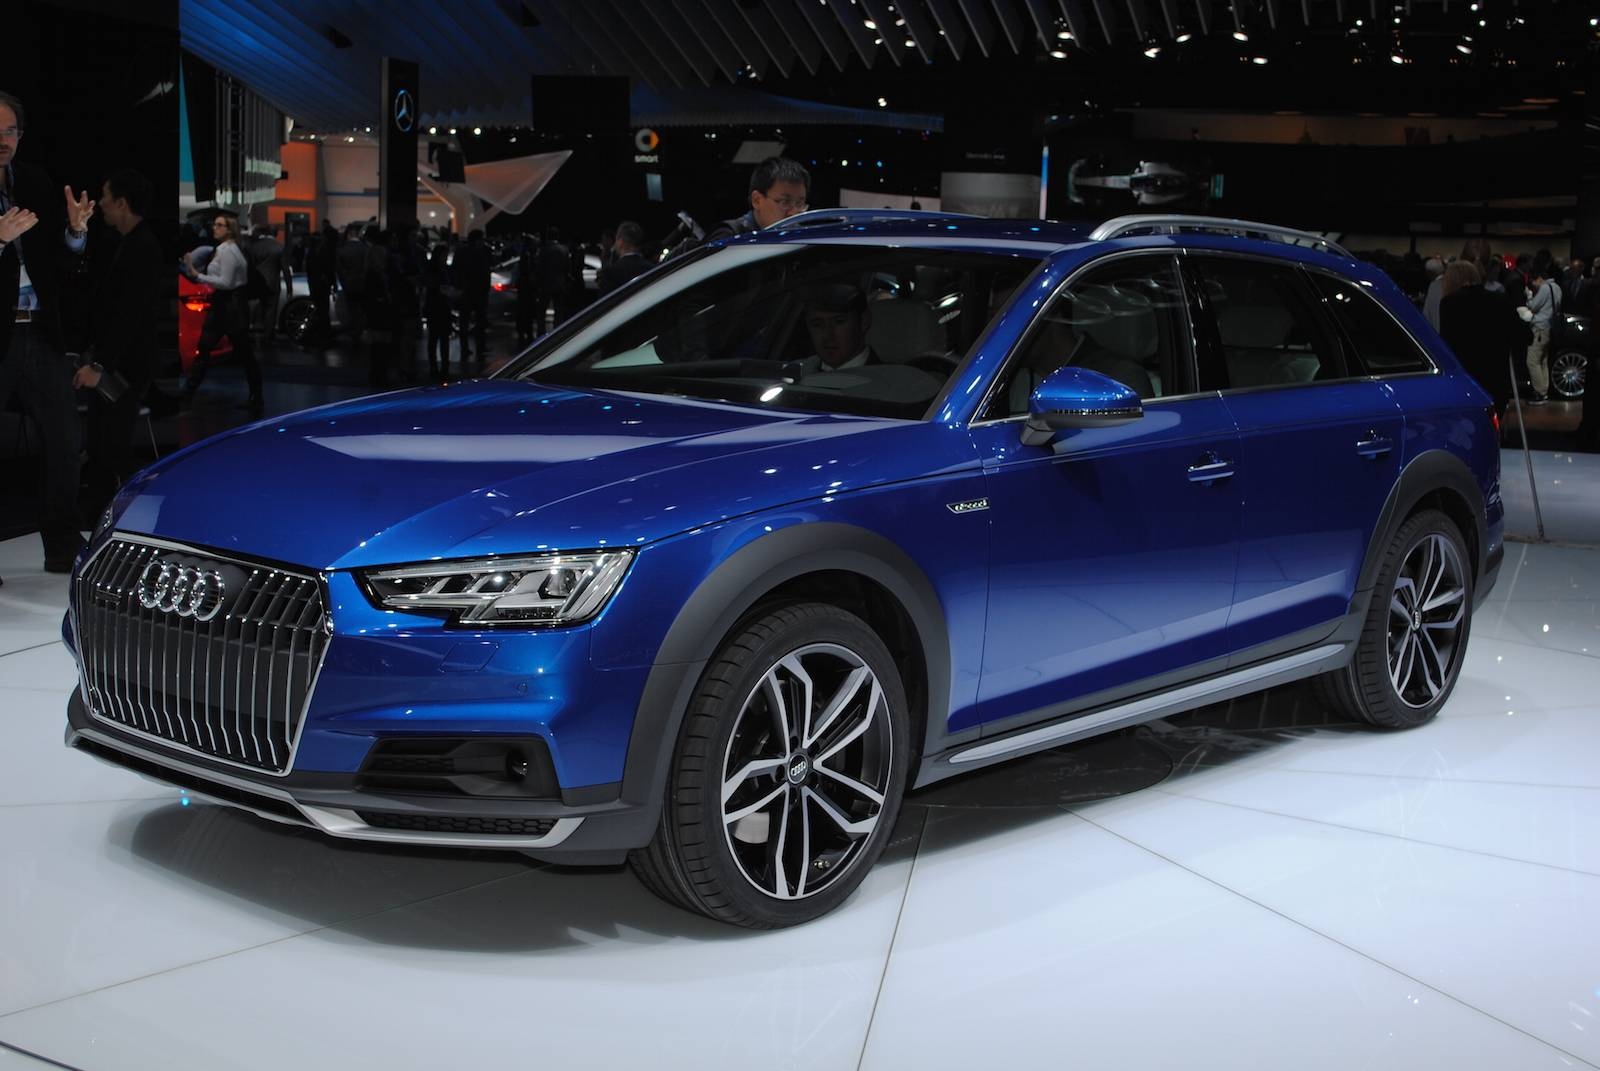 New Generation Audi A4 Allroad Quattro Unveiled At 2016 Detroit Motor Show 1